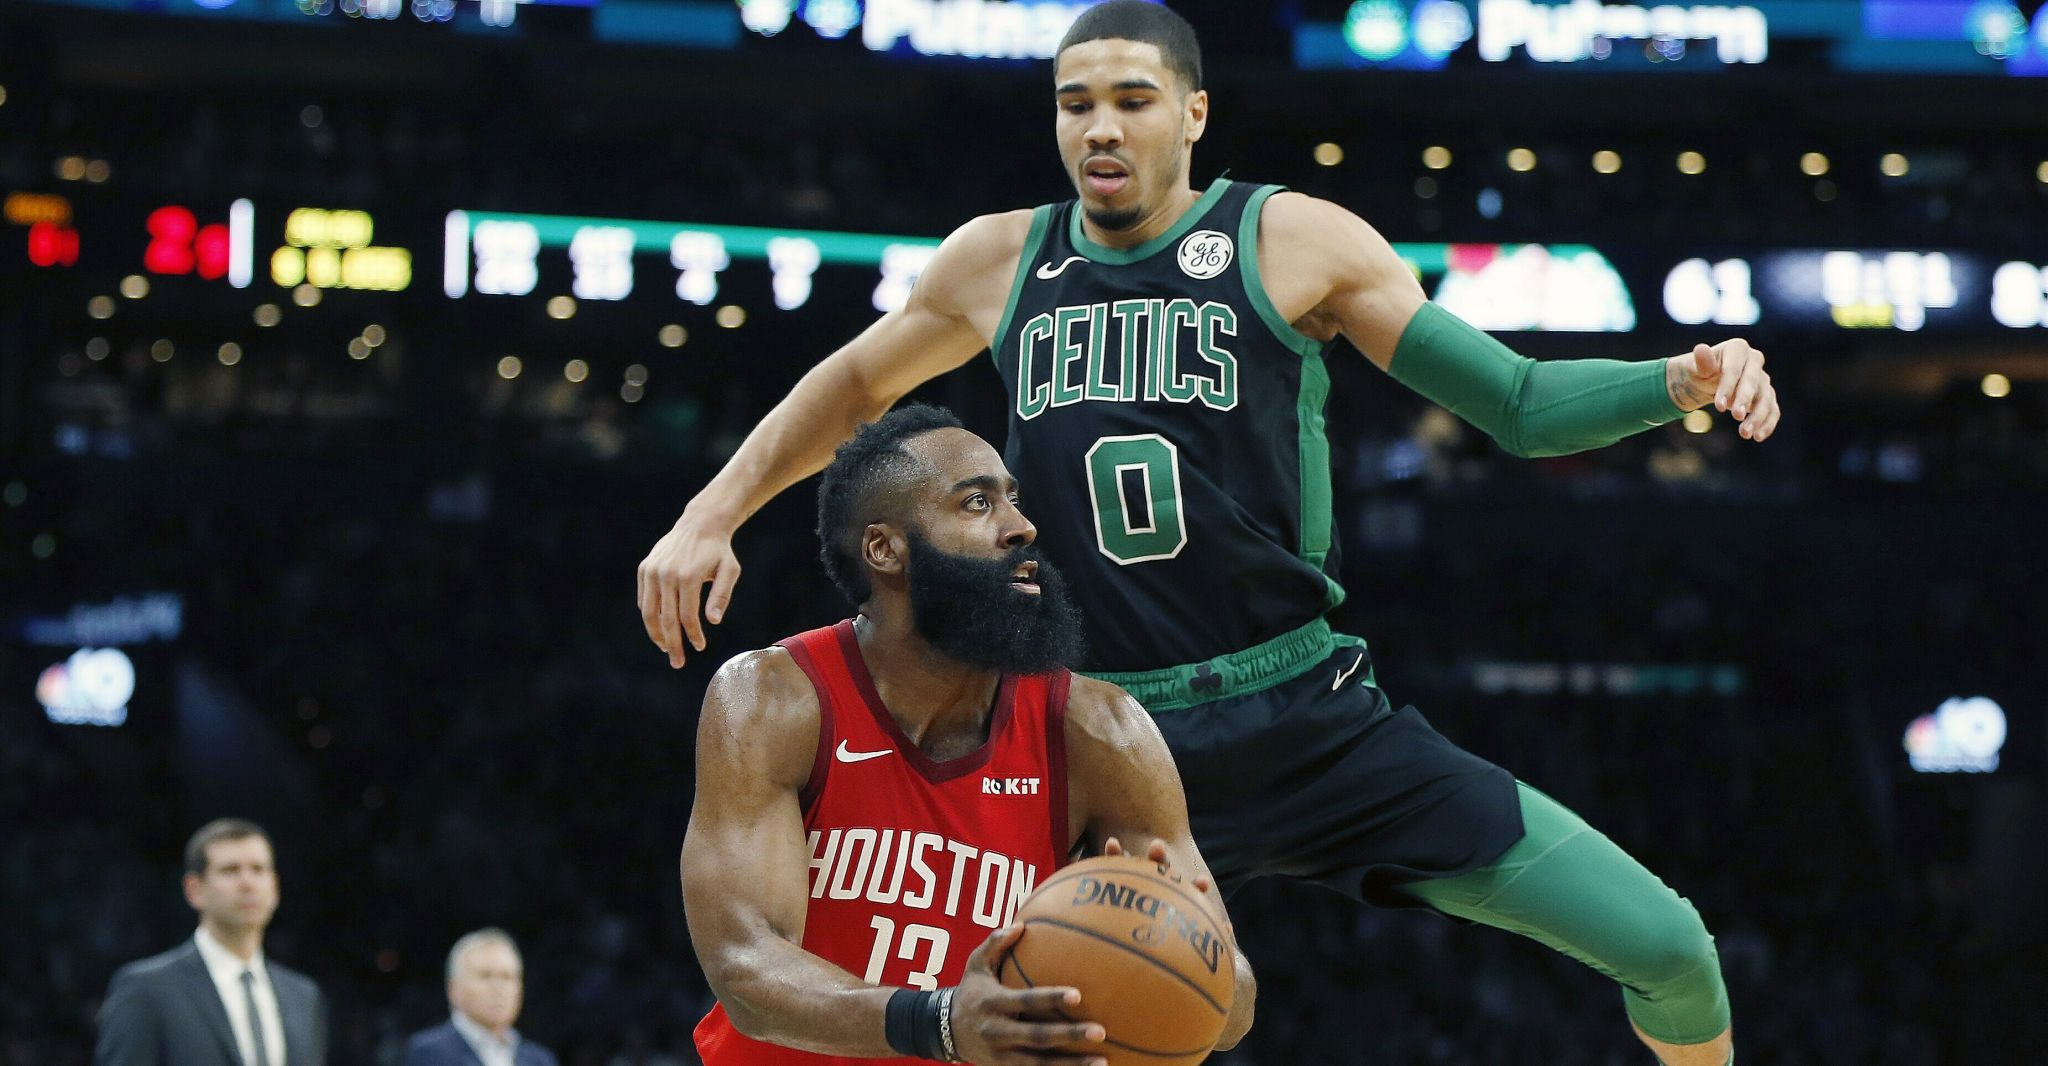 Rockets enjoy another 3-for-all in win over Celtics - HoustonChronicle.com d6d89d4a7